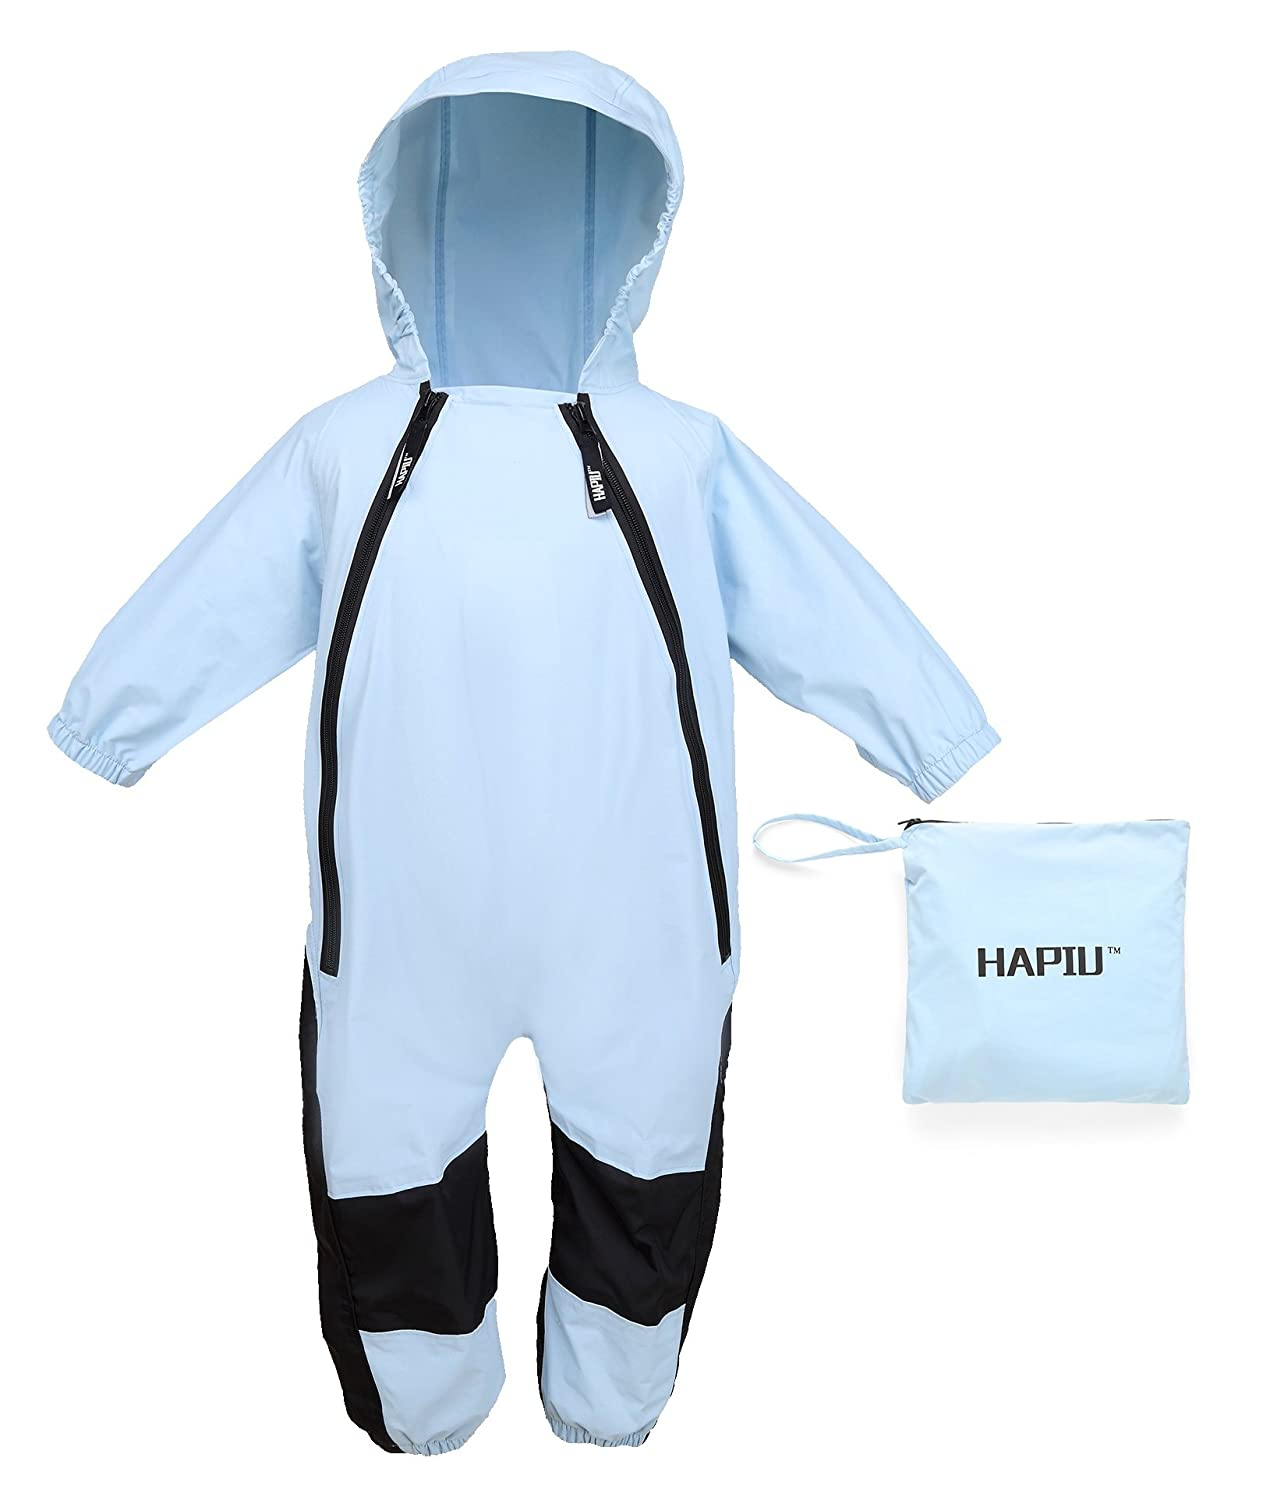 HAPIU Kids and Toddler Rain Suit One Piece Waterproof Coverall with Hood Blue 12M BU-12M